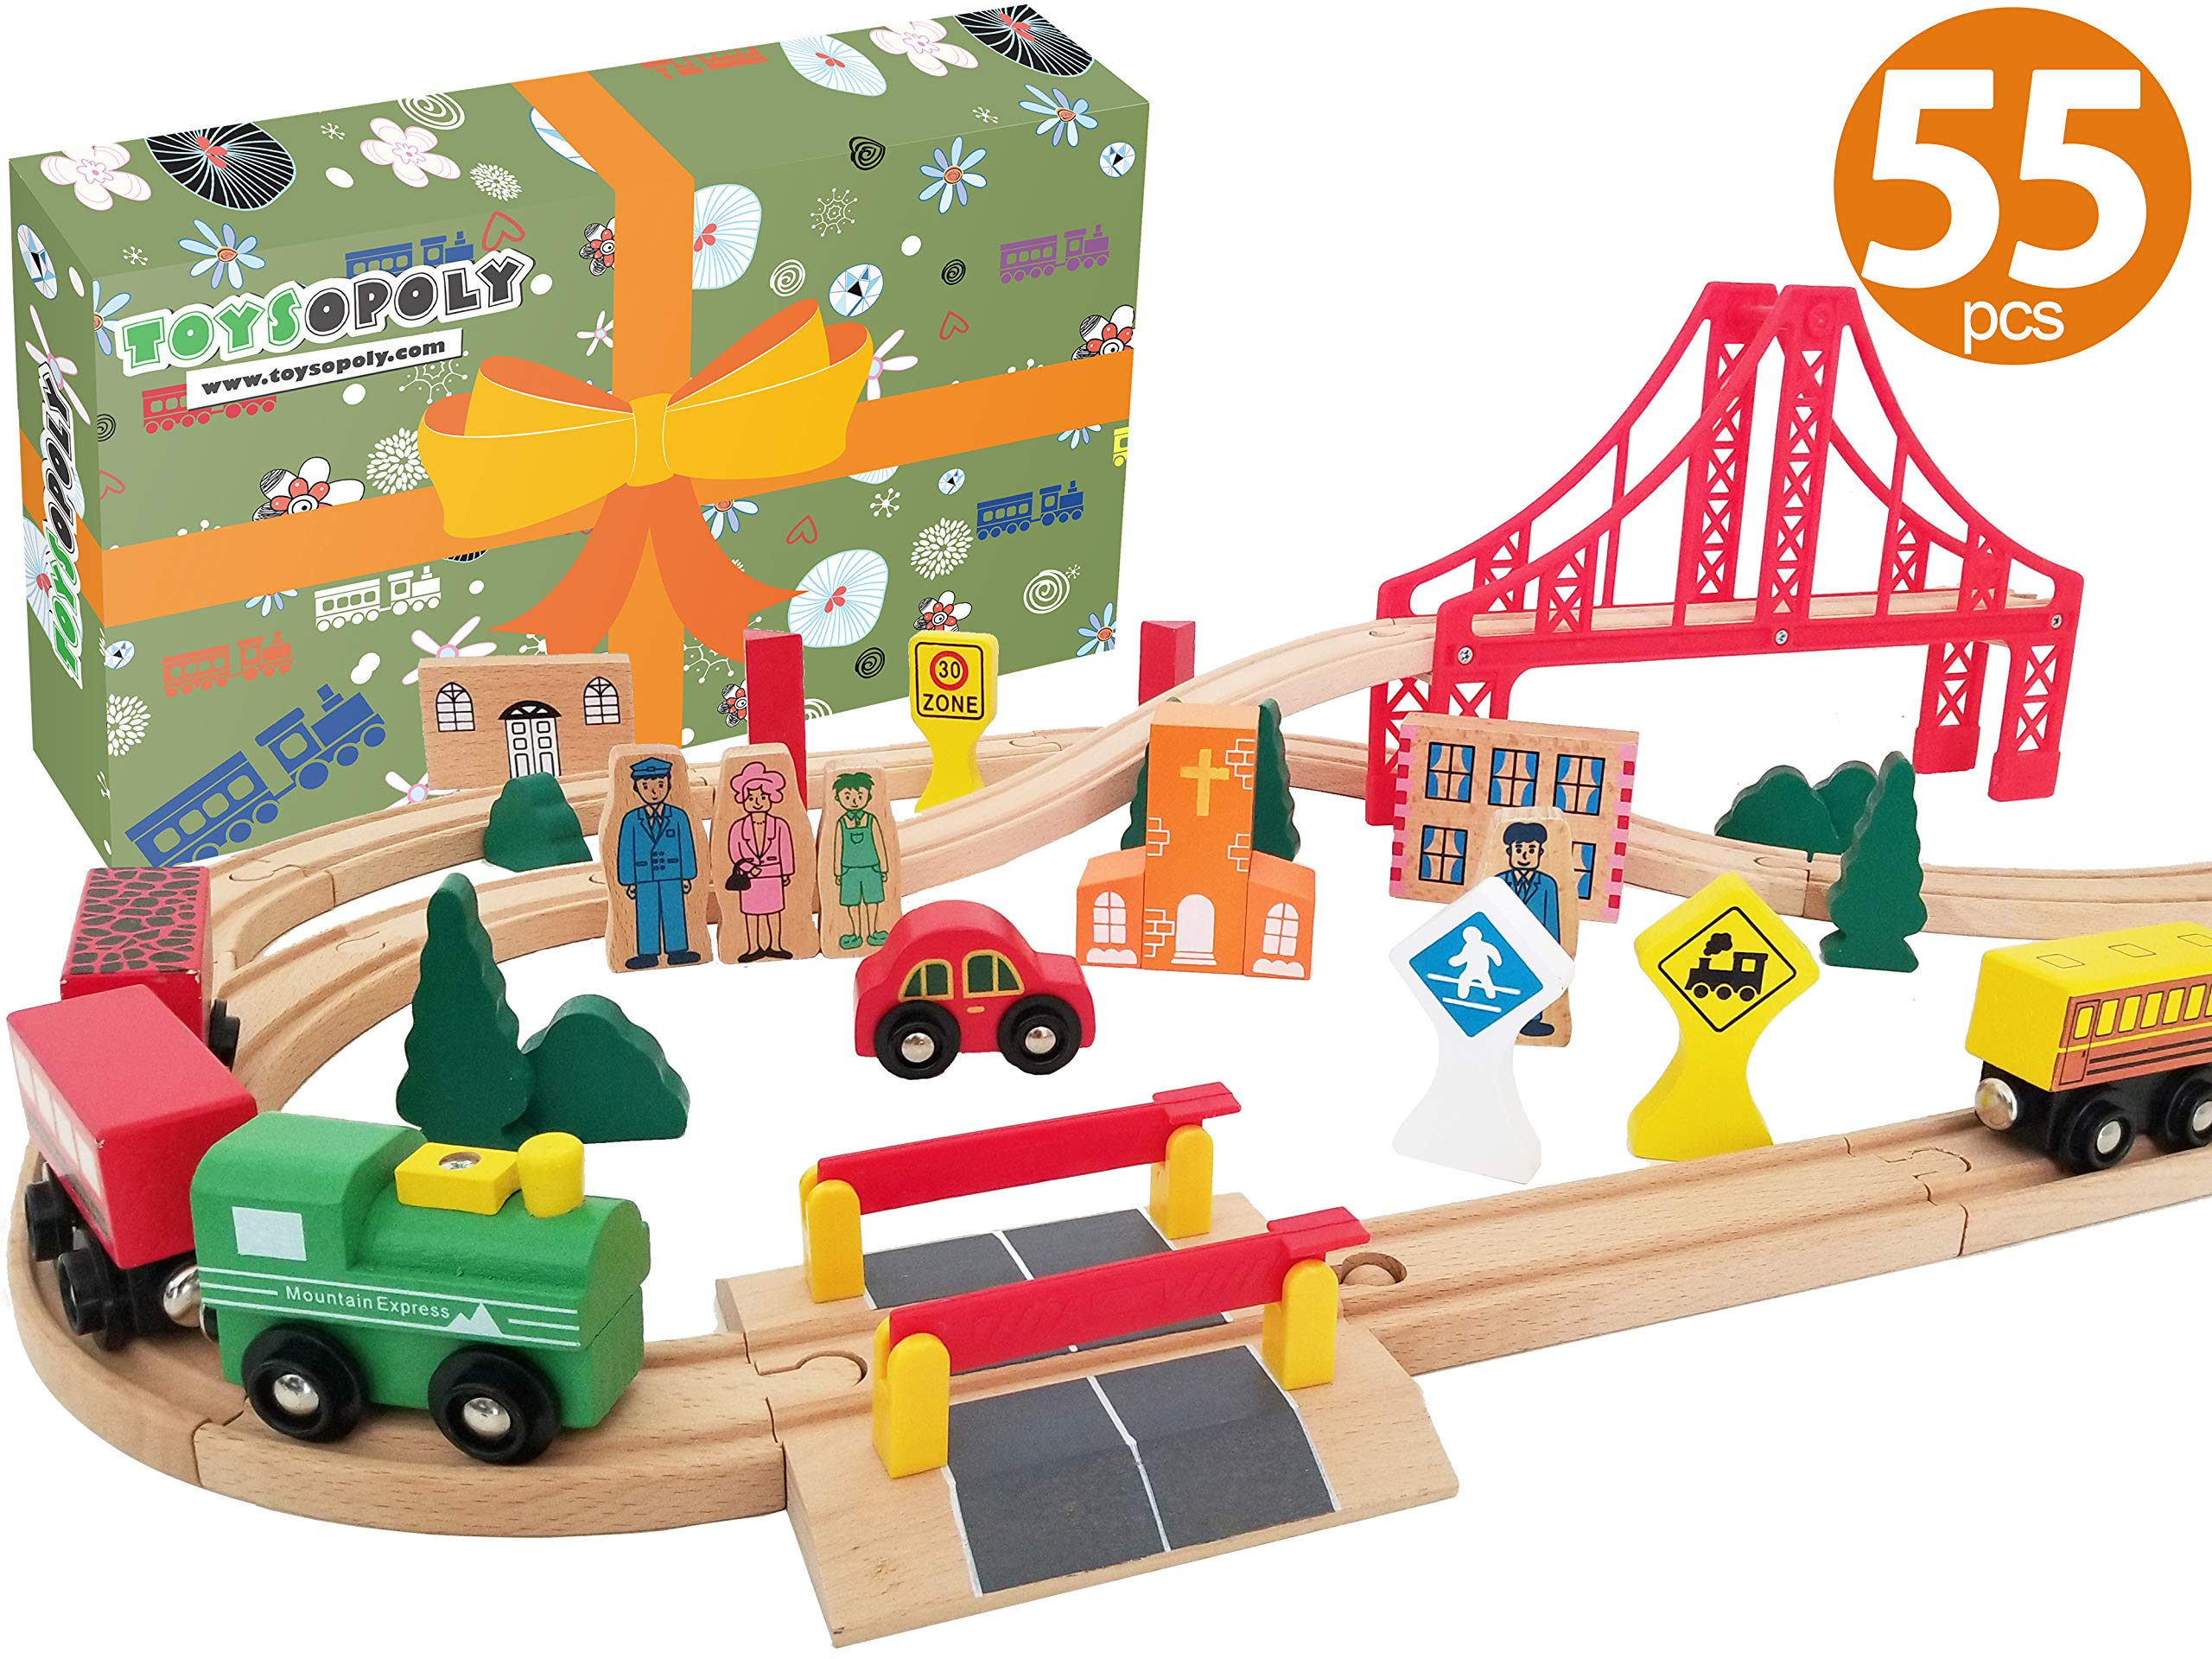 Wooden Train Tracks Full Set, Deluxe 55 Pcs with 3 Destination Fits Thomas, Brio, IKEA, Chuggington, Imaginarium, Melissa and Doug - Best Gifts for Kids Toddler Boys and Girls by ToysOpoly